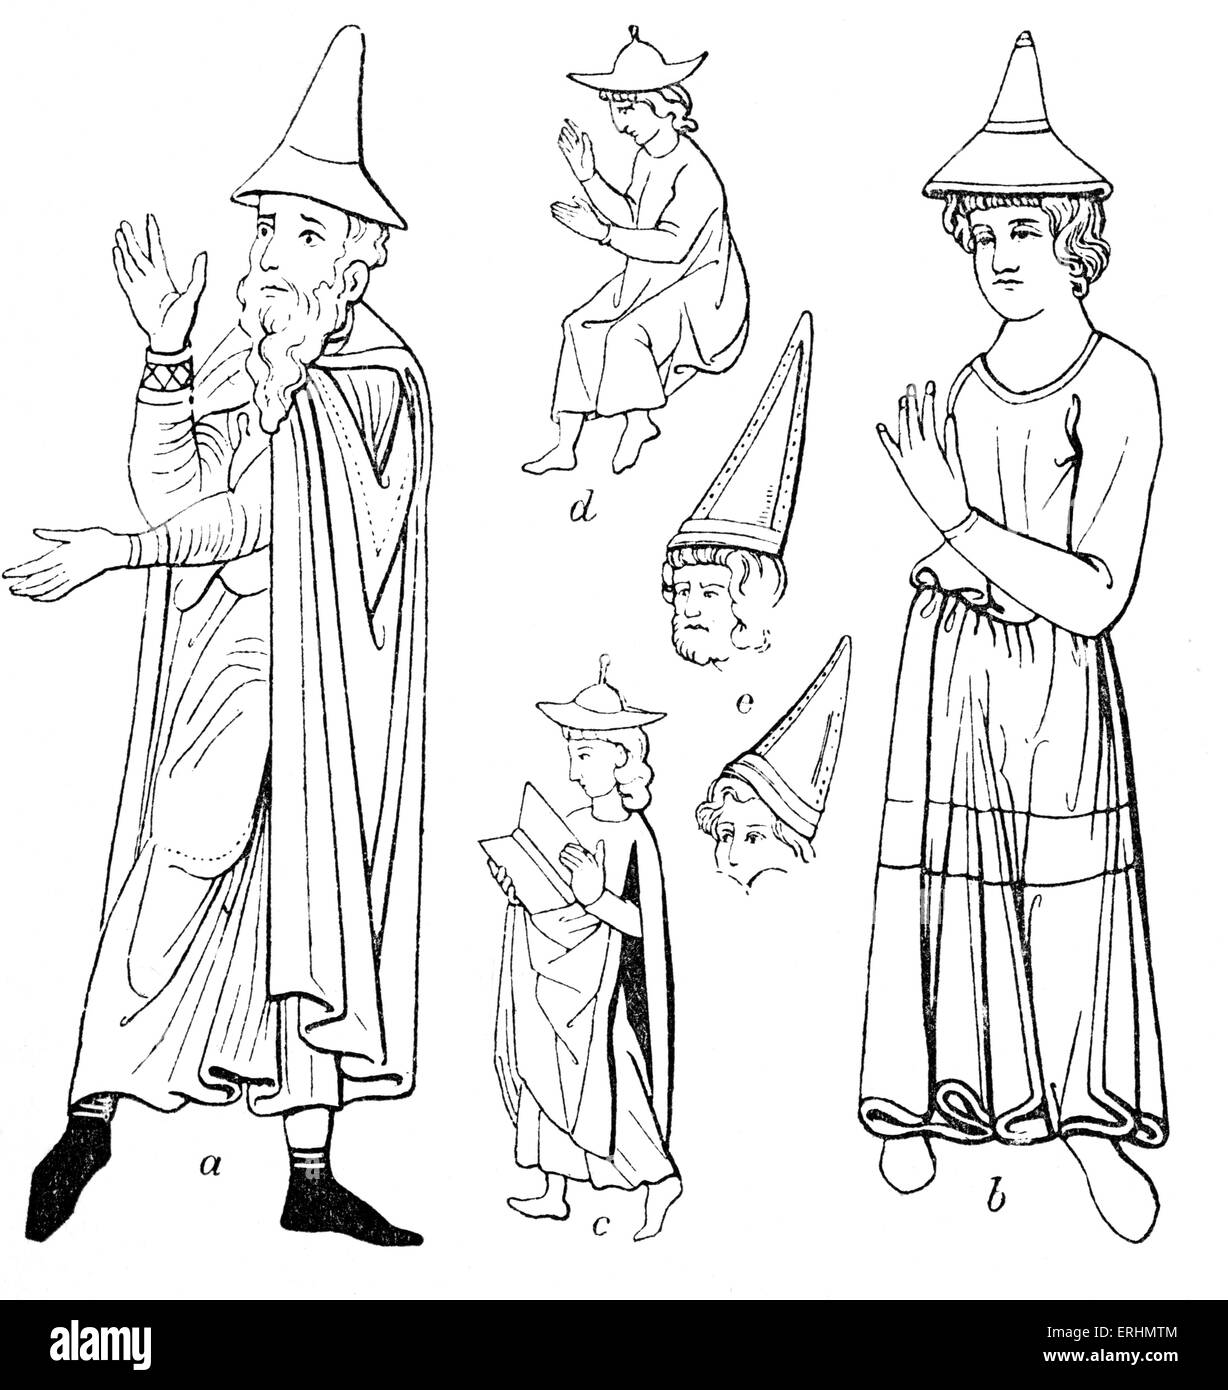 Jew in Germany were obliged to wear special identifying hats in the Middle  Ages. db06a947fb9